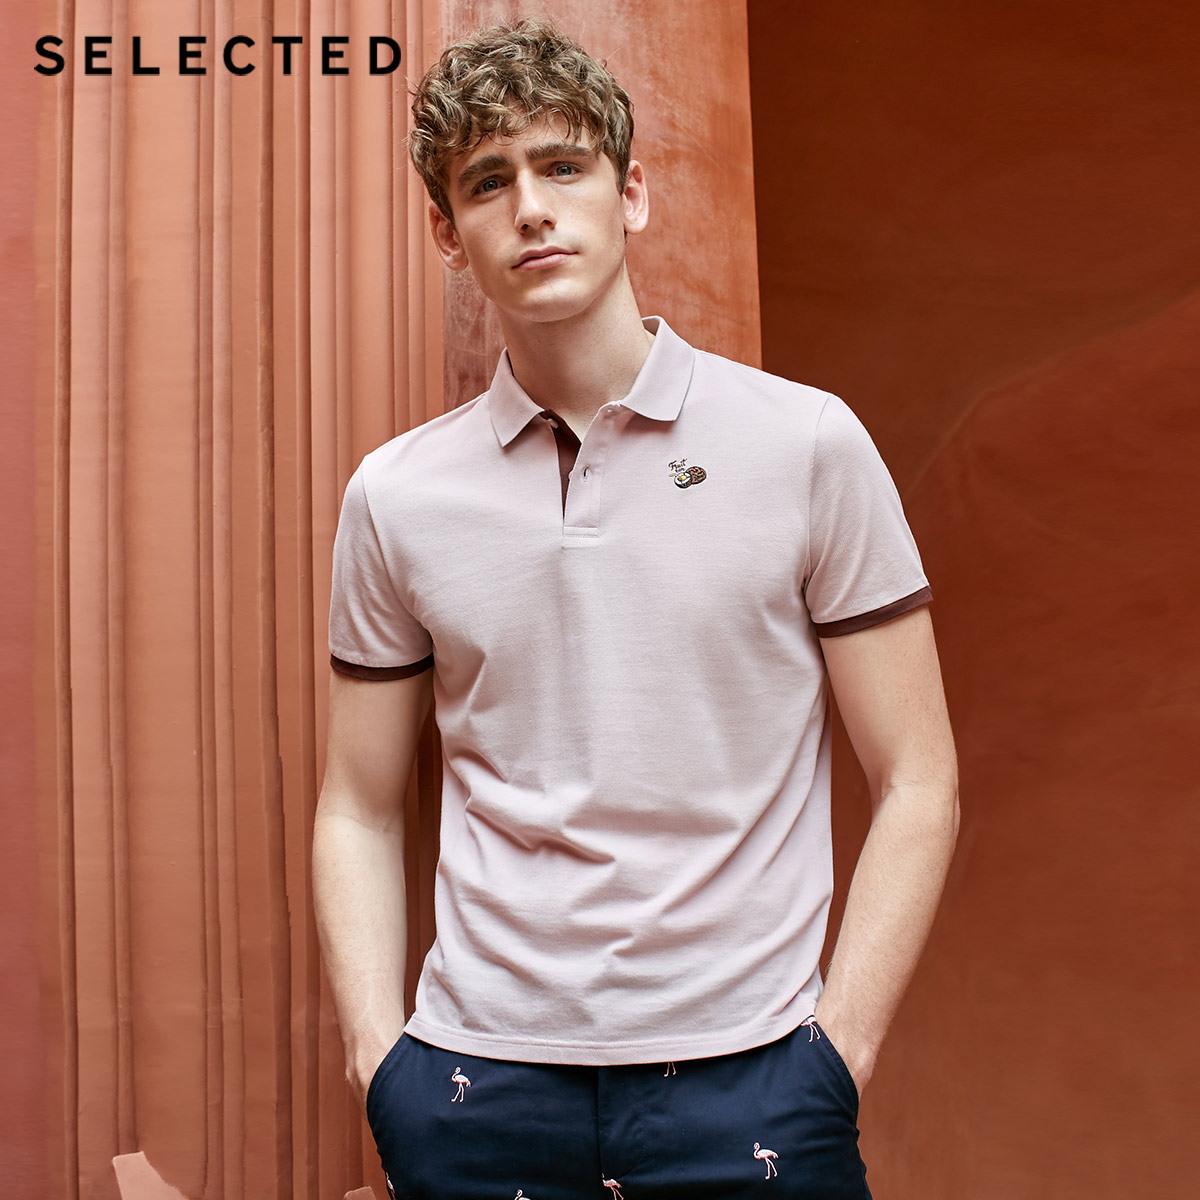 SELECTED Men's Embroidered Turn-down Collar Short-sleeved Polo Shirt S|419206510